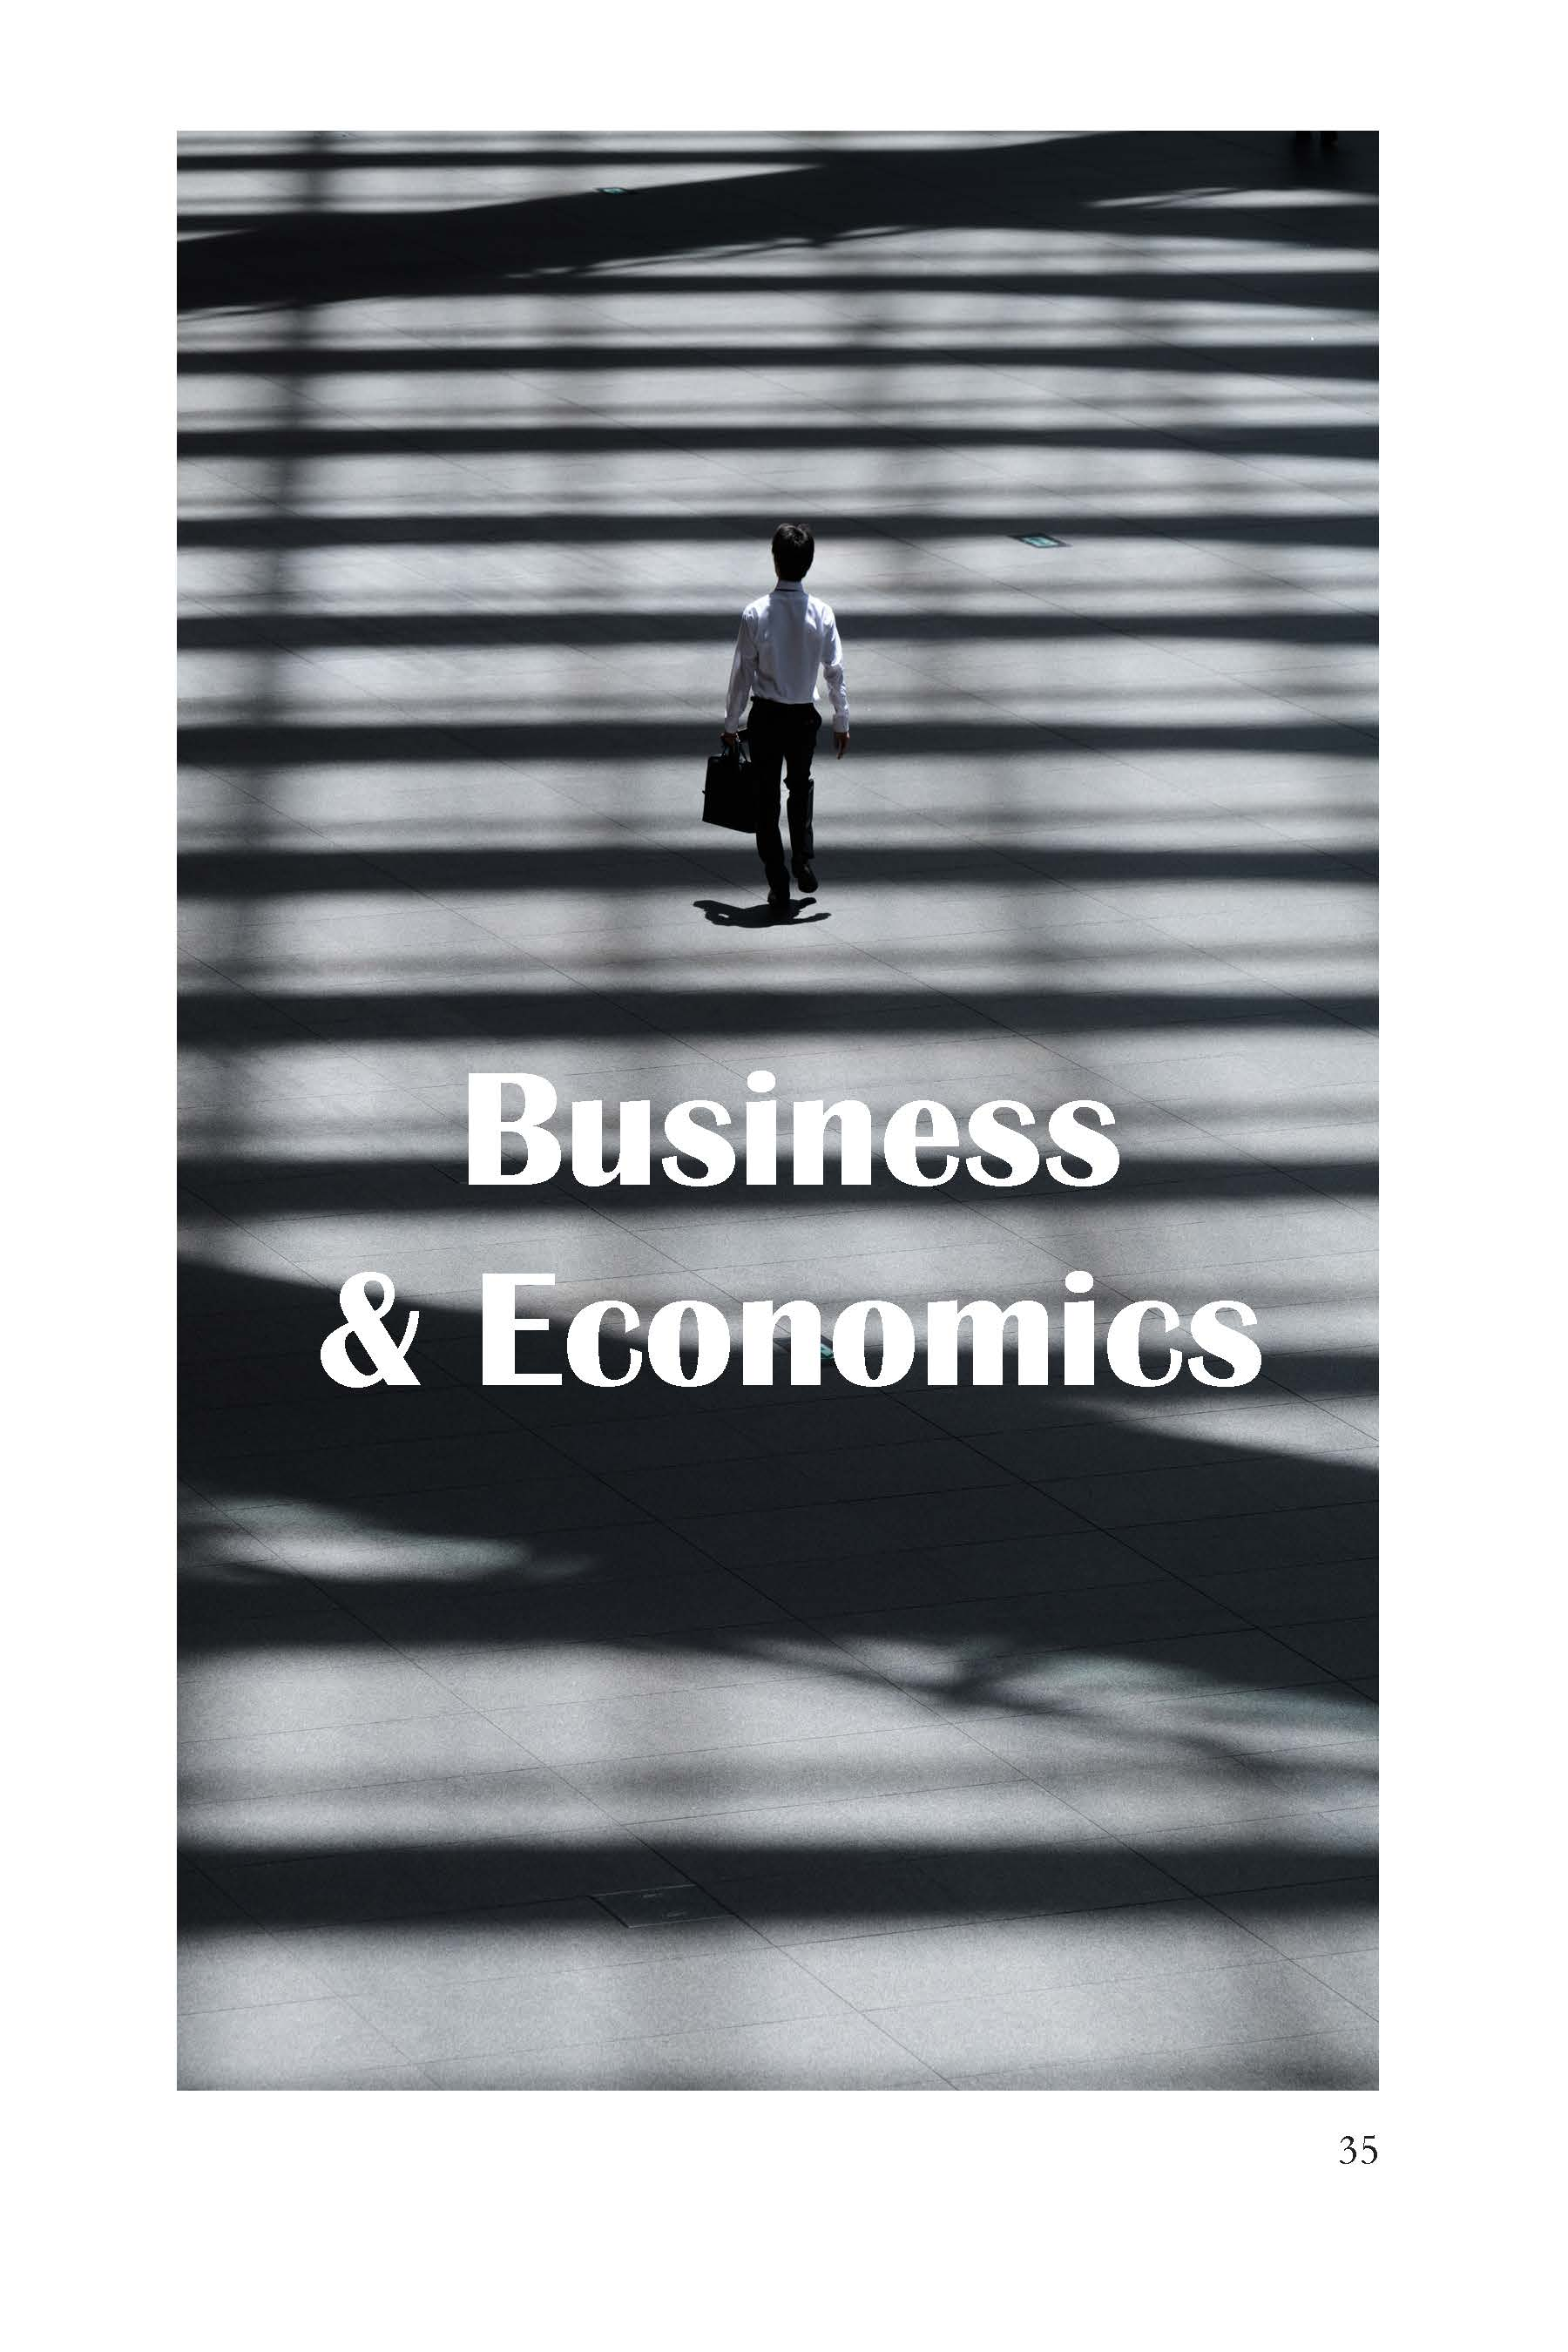 Image is abstract shdow and light, gray tones, lone person walking away, Business & Economics section pageaway